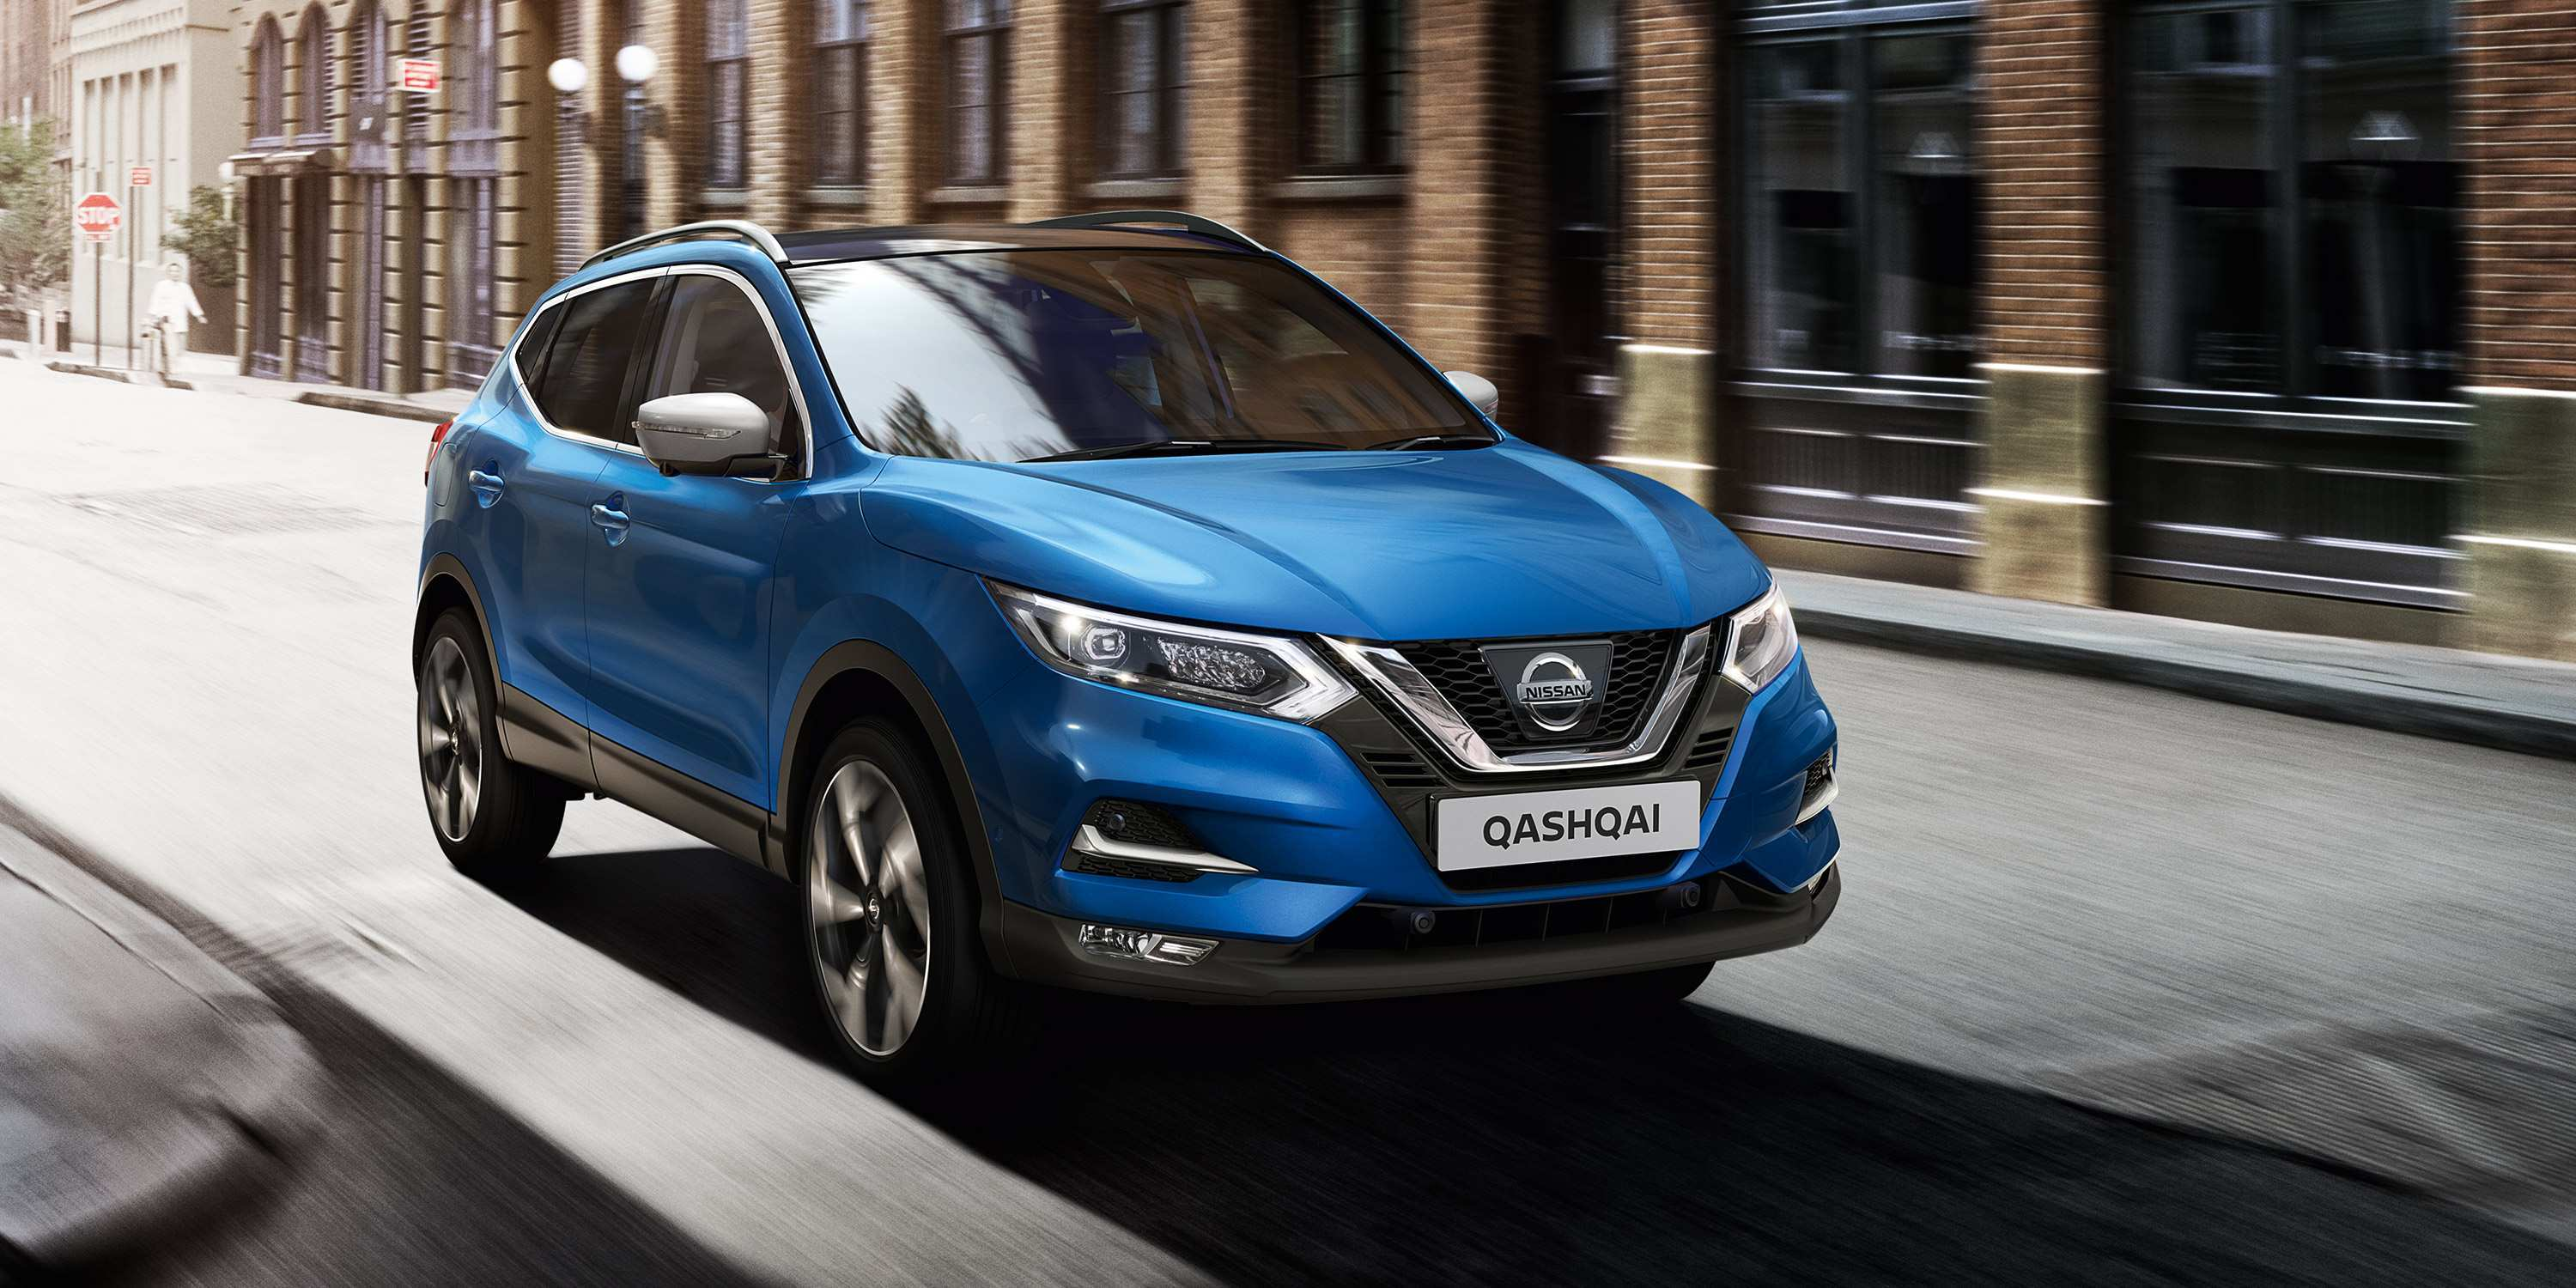 76 Concept of Nissan Qashqai 2020 Australia Reviews for Nissan Qashqai 2020 Australia